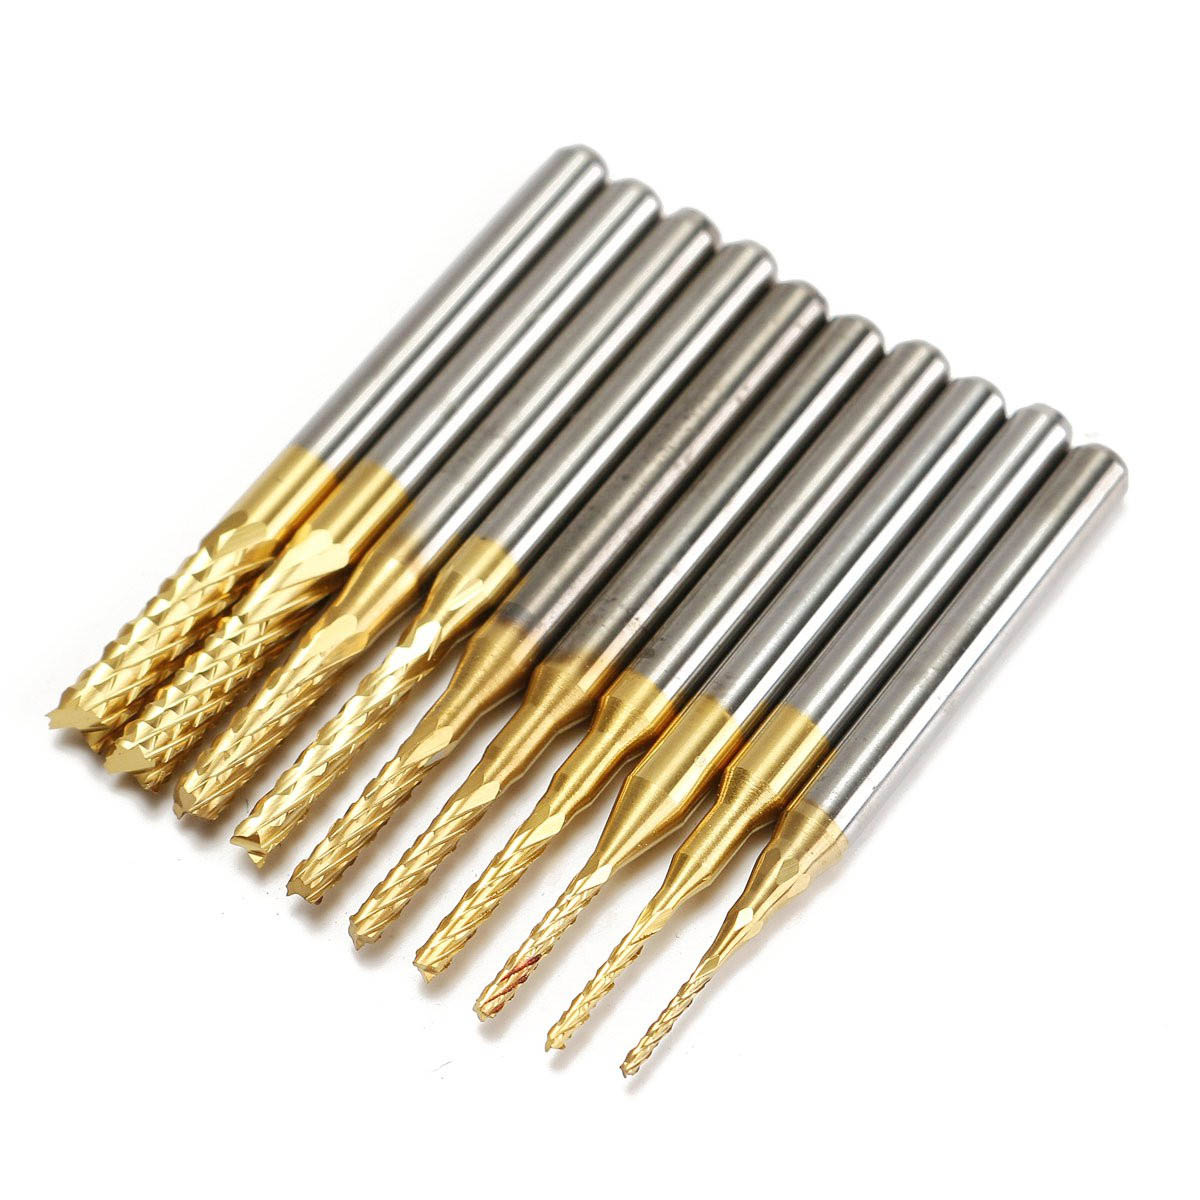 10Pcs/Box Cemented Carbide Drillpro 1/8 0.8-3.175mm CNC PCB Drill Bit Engraving Mill Cutter Durable Quality 10pcs box 1 8 inch 0 8 3 17mm pcb engraving cutter rotary cnc end mill 0 8 1 0 1 2 1 4 1 6 1 8 2 0 2 2 2 4 3 17mm